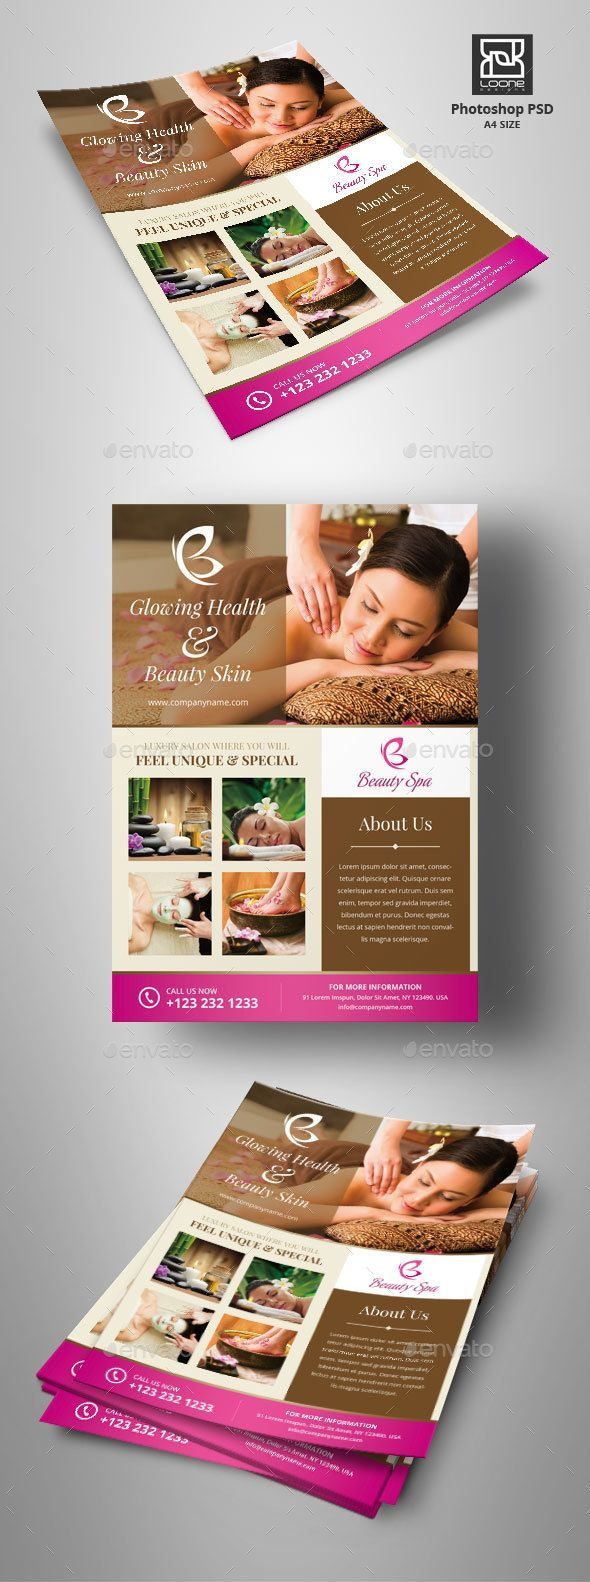 #Spa #Flyer #template - #beauty #salon #Corporate #business #promo Flyers #design. download; https://graphicriver.net/item/spa-flyer/20418942?ref=yinkira